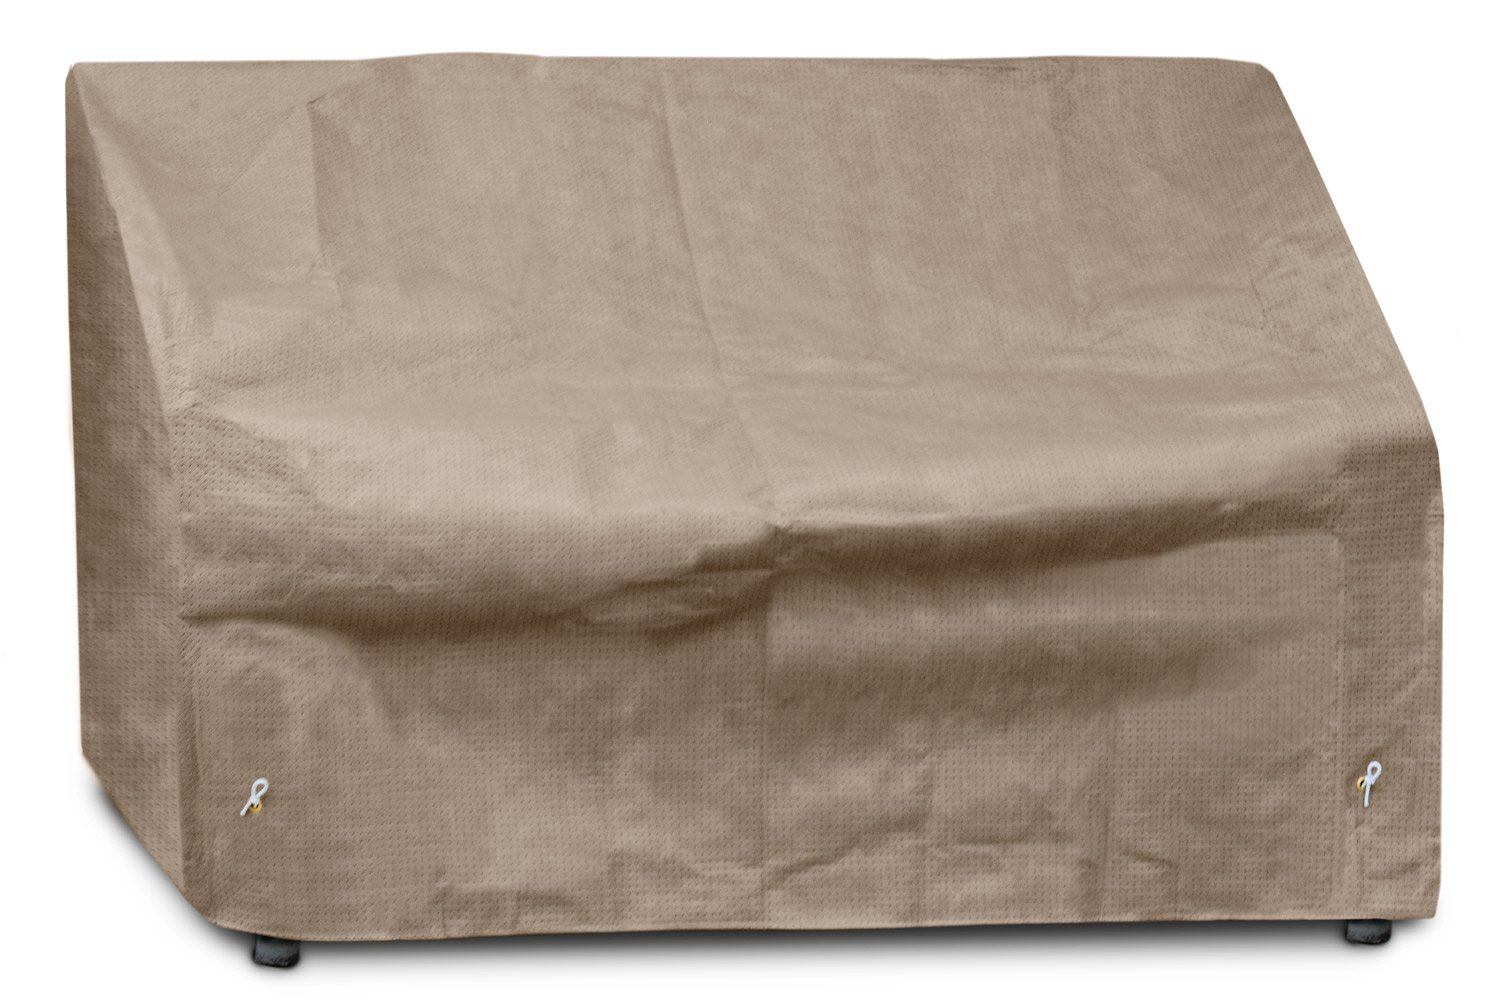 51-Inch Width by 33-Inch Diameter by 33-Inch Height KoverRoos III 39147 Loveseat//Sofa Cover Taupe